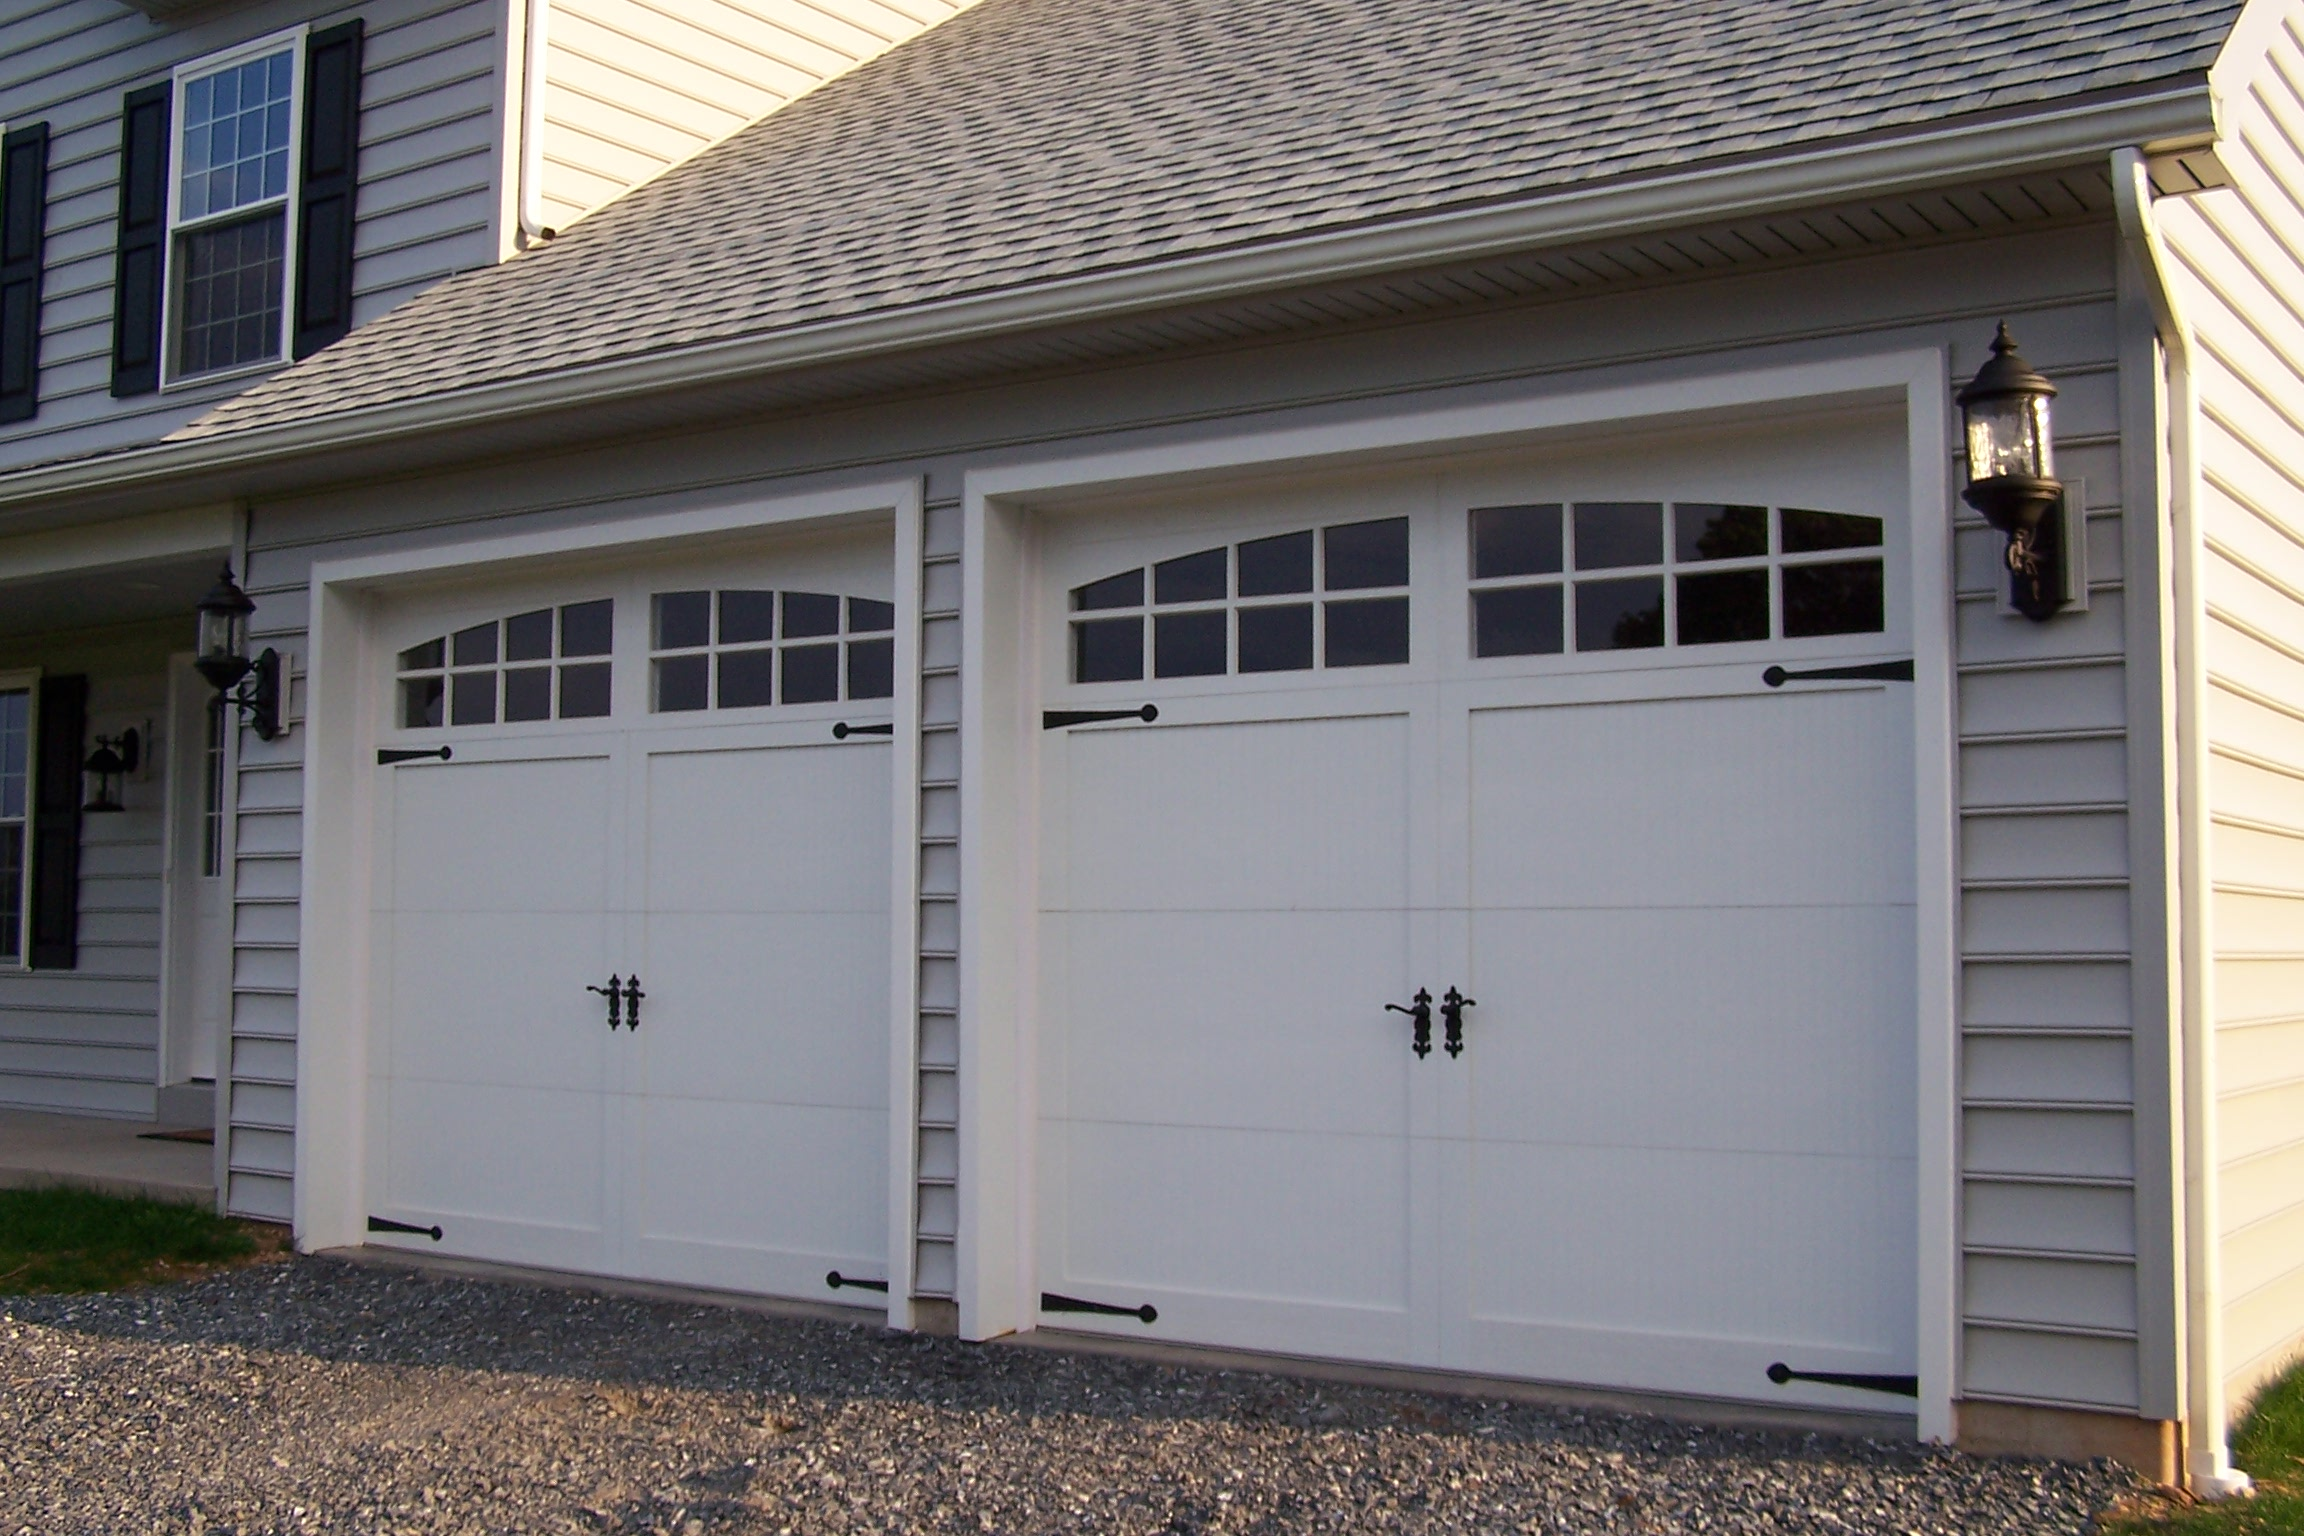 File Sectional type overhead garage door JPG   Wikipedia File Sectional type overhead garage door JPG